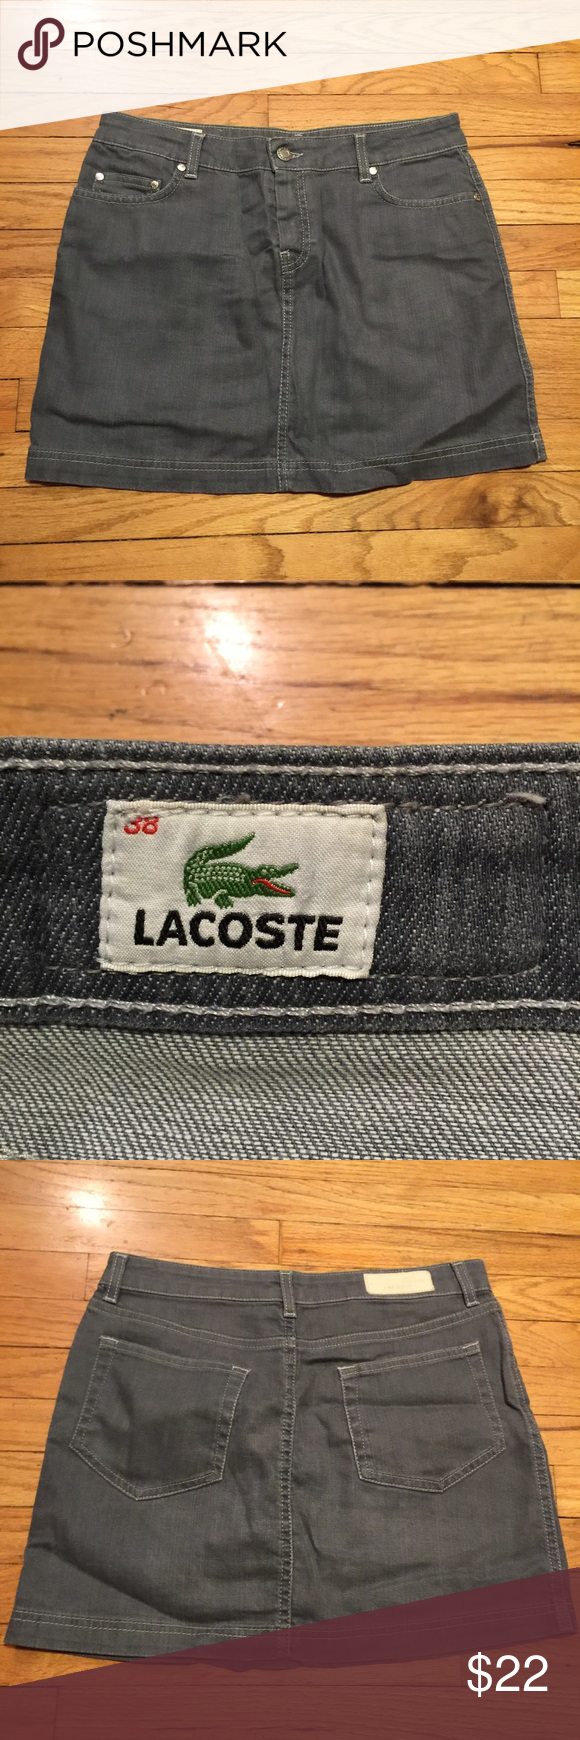 Lacoste gray denim mini skirt - sz 38 Lacoste gray denim mini skirt - sz 38. Waist - 15.5 inches. Length - 15 inches. Excellent condition. Lacoste Skirts Mini